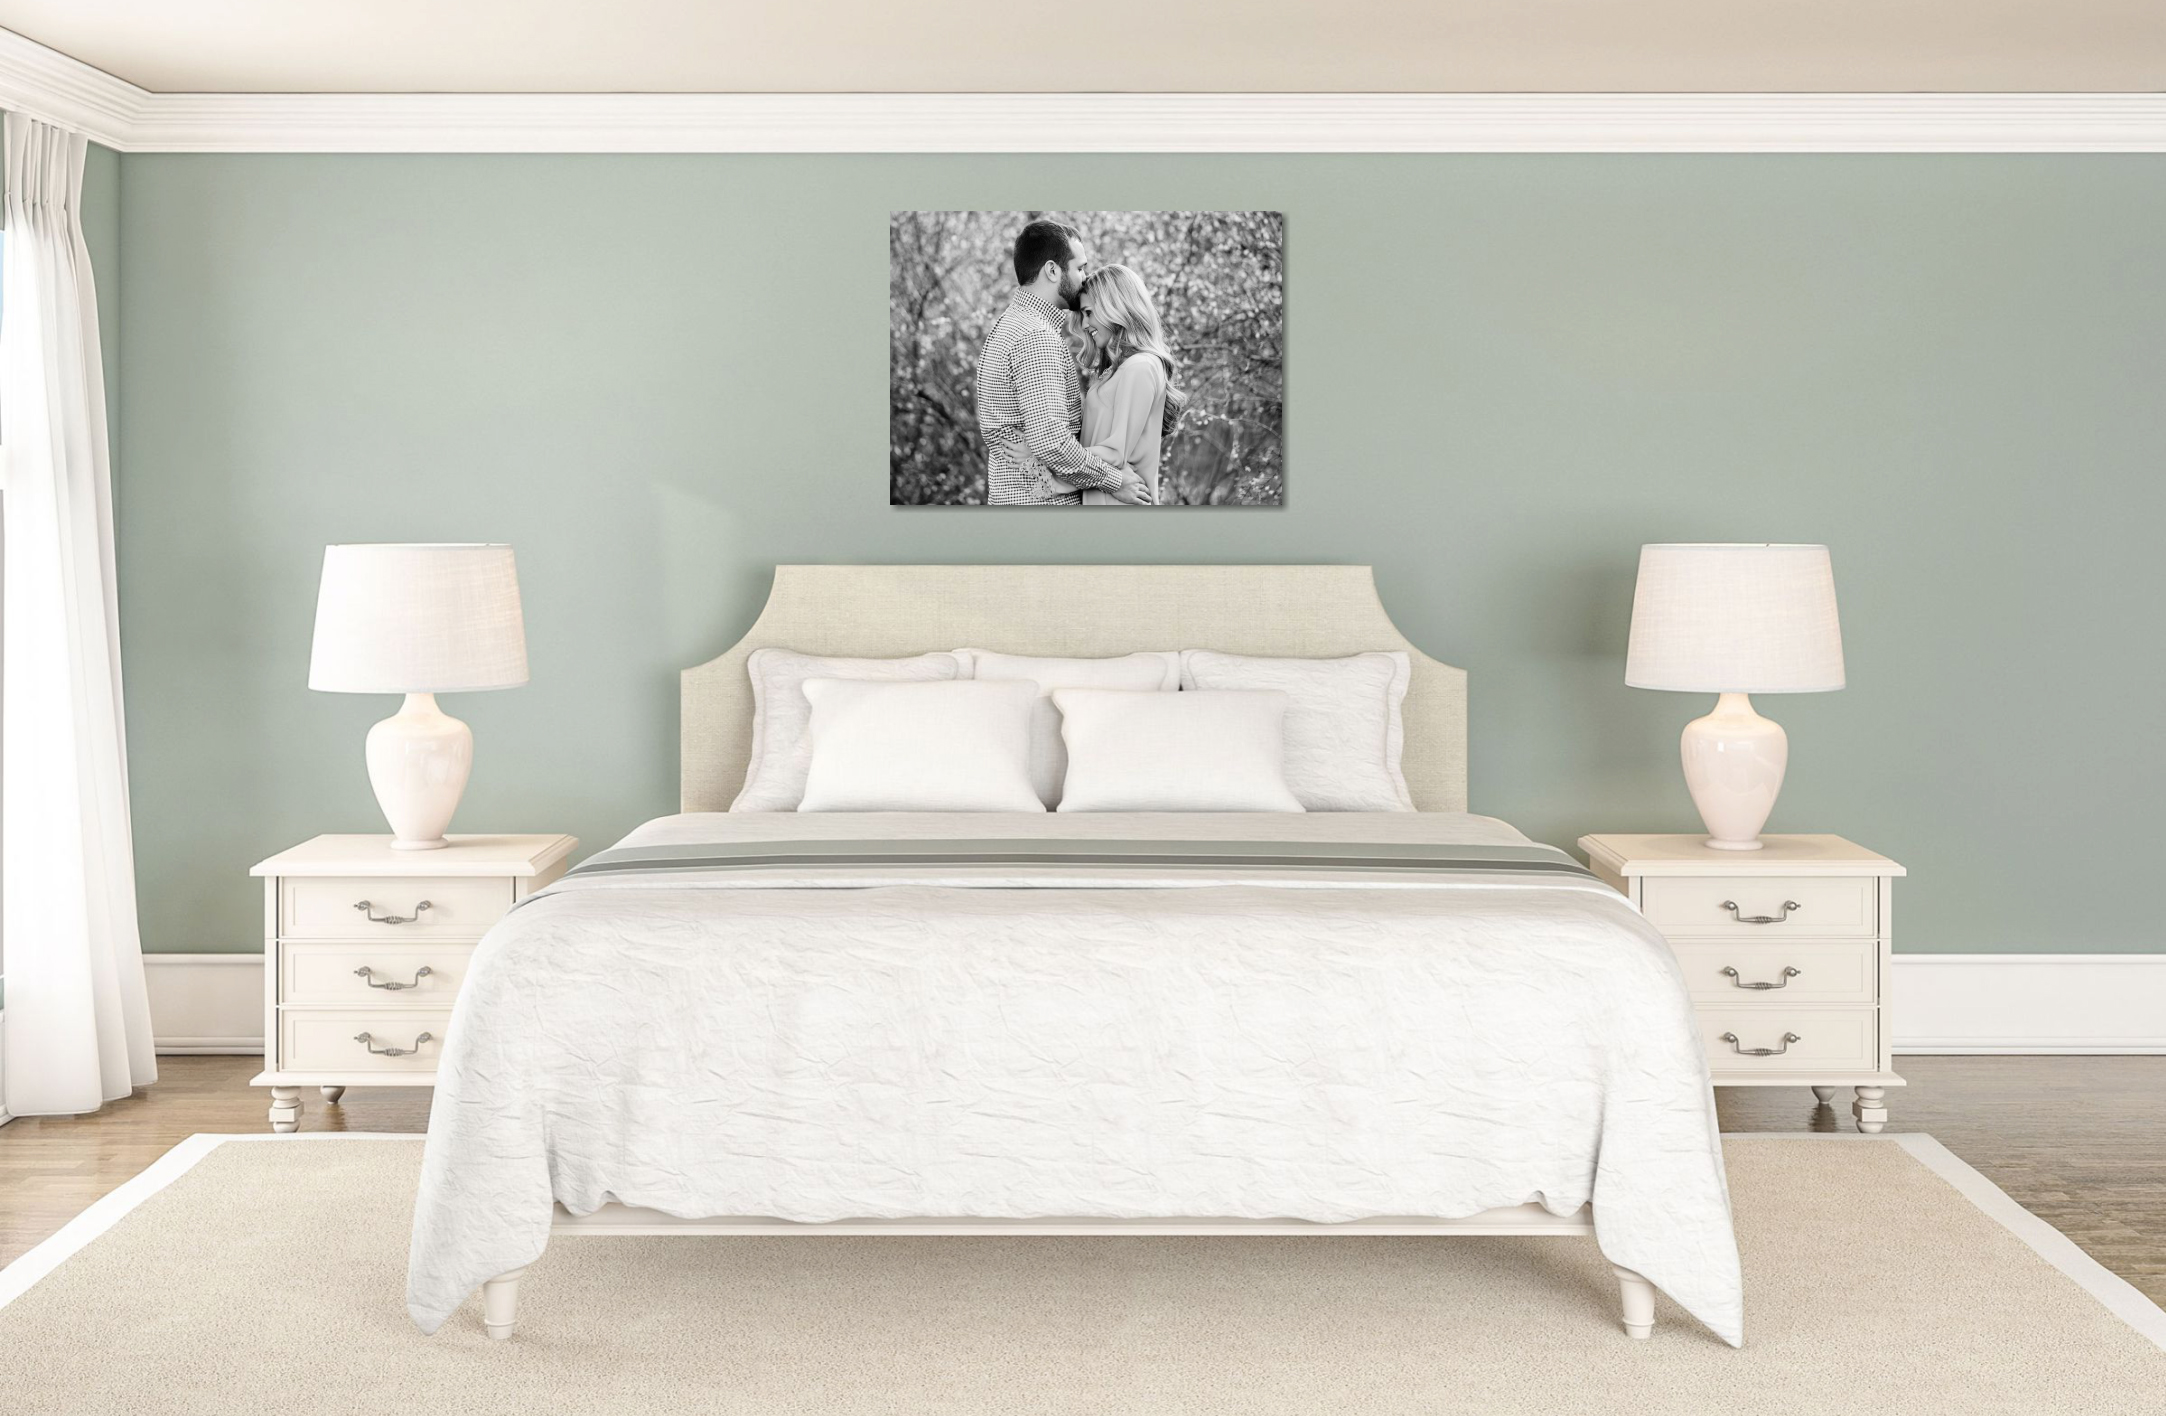 Individual Wall Art - (Framed Fine Art, Canvas, Standout or Metal Art)Starting at $500